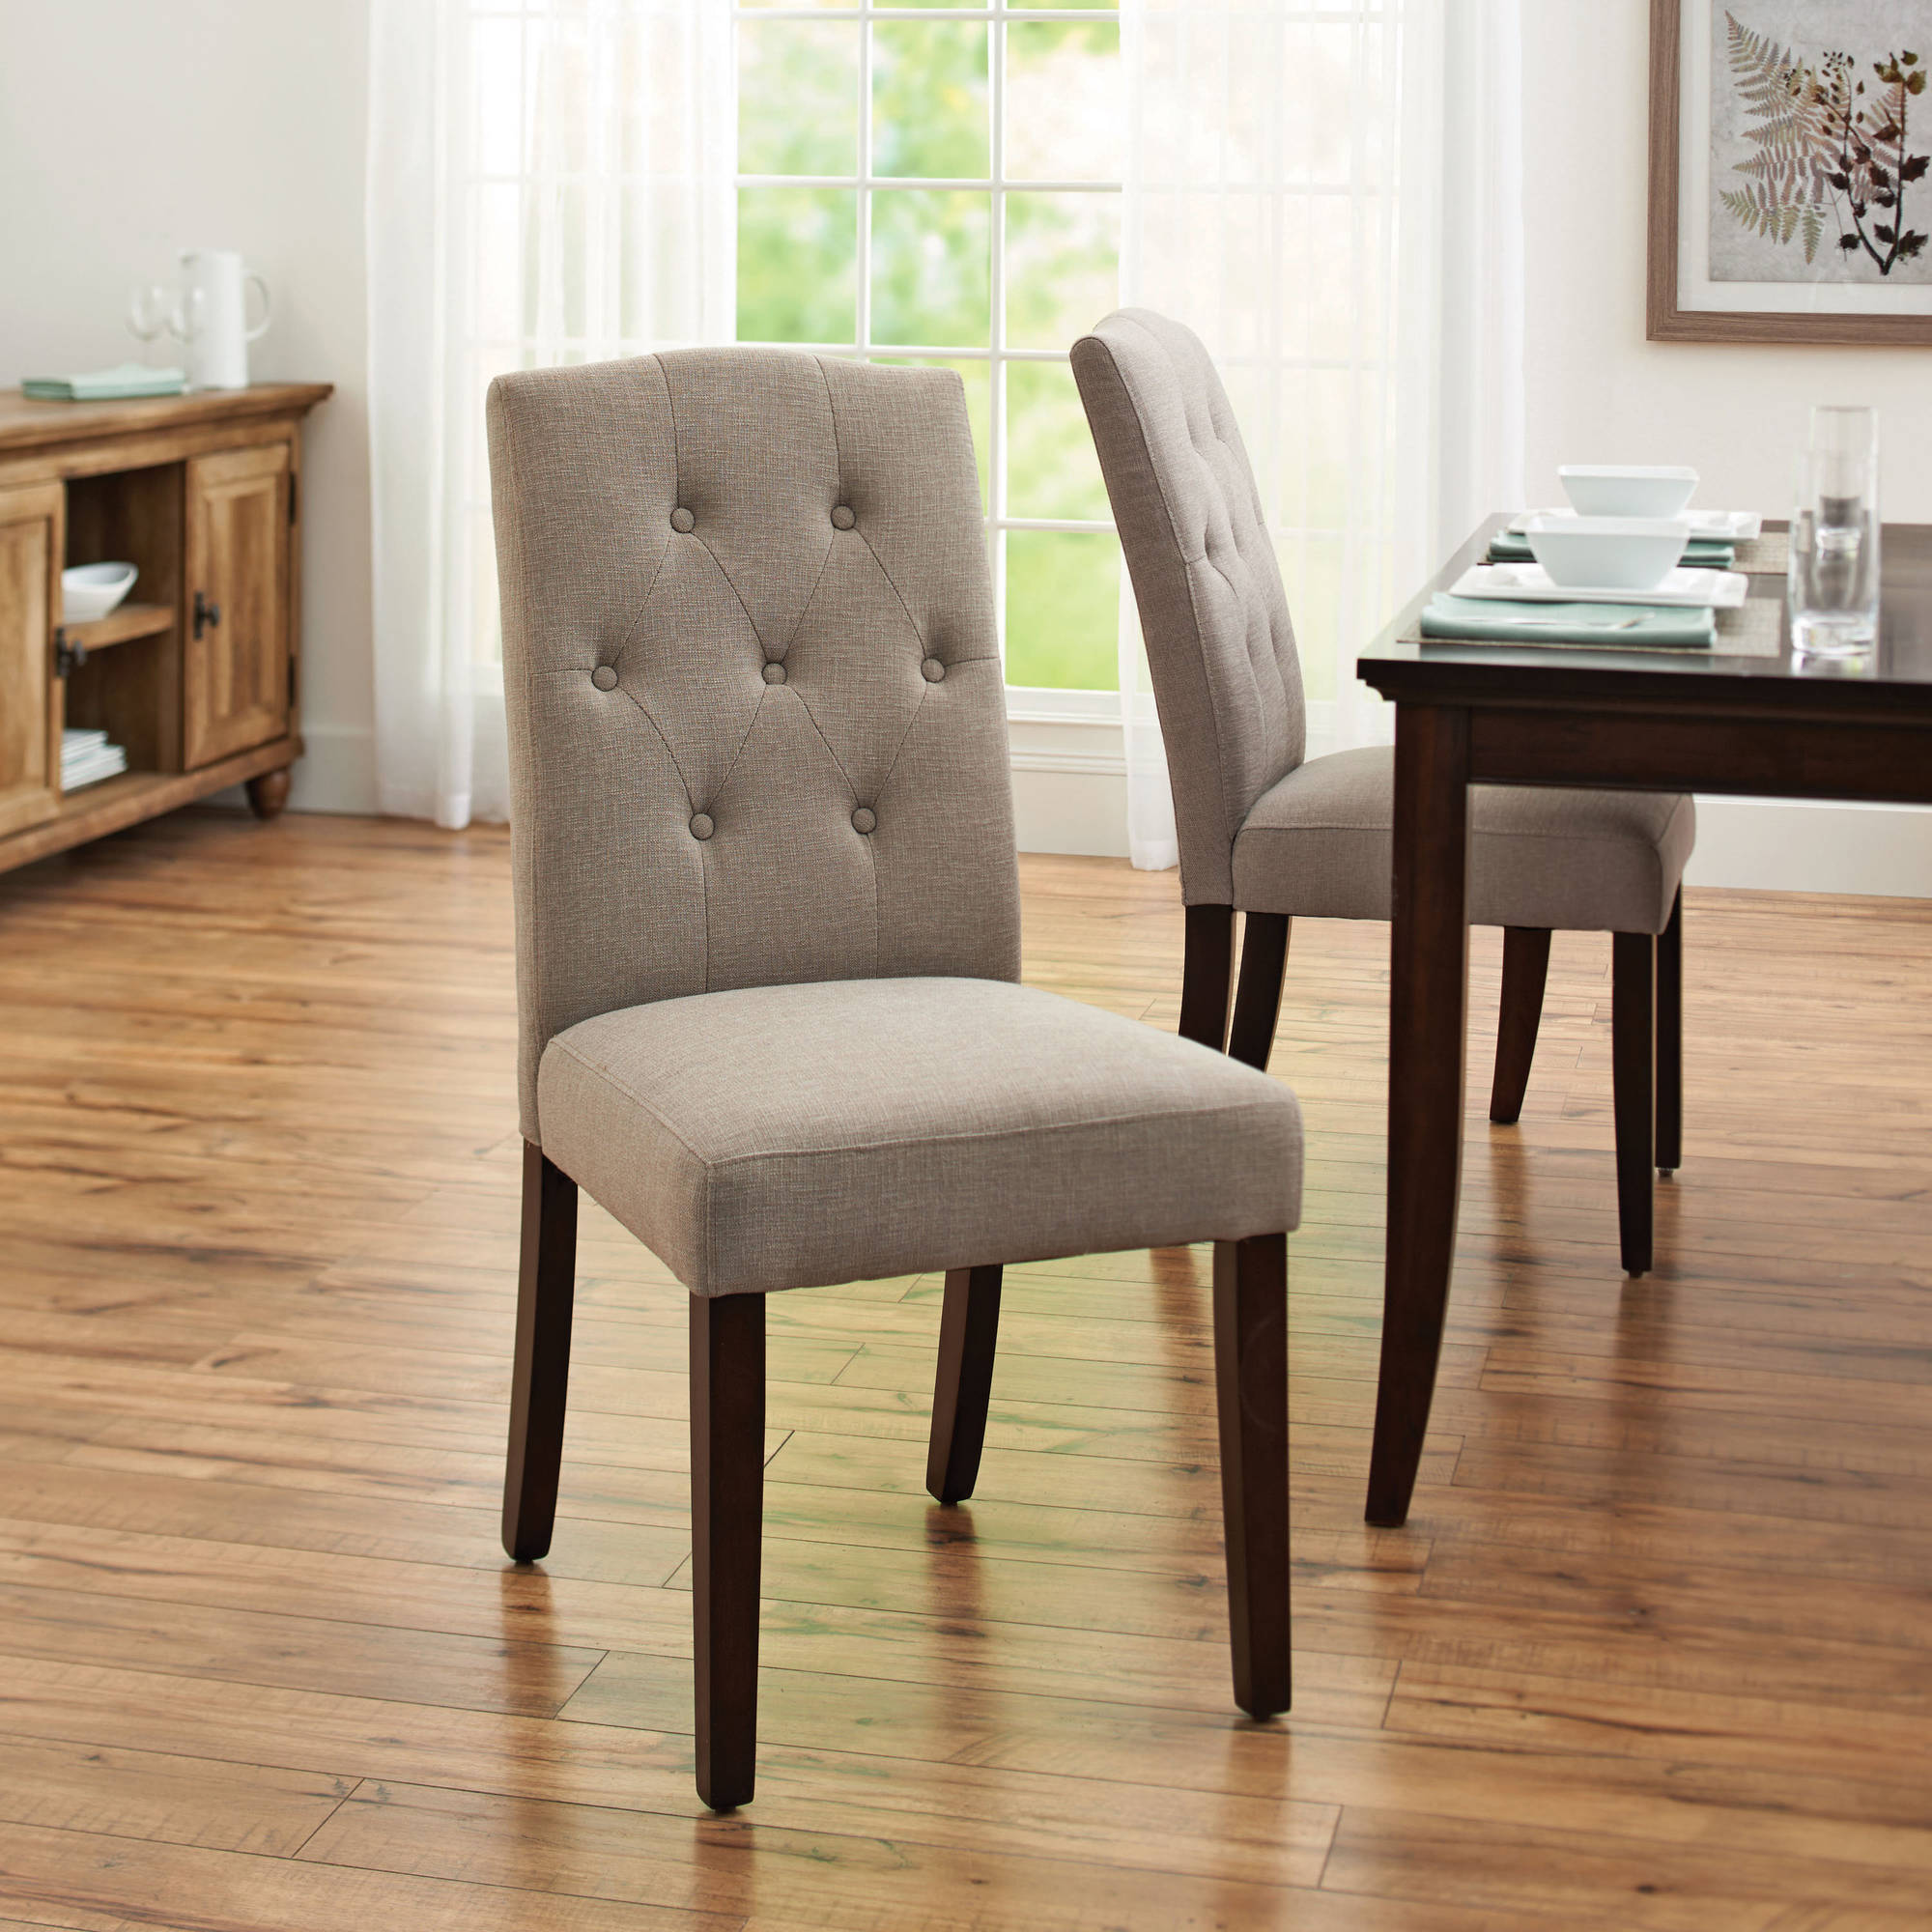 wayfair kitchen chairs Better Homes and Gardens Parsons Tufted Dining Chair Taupe